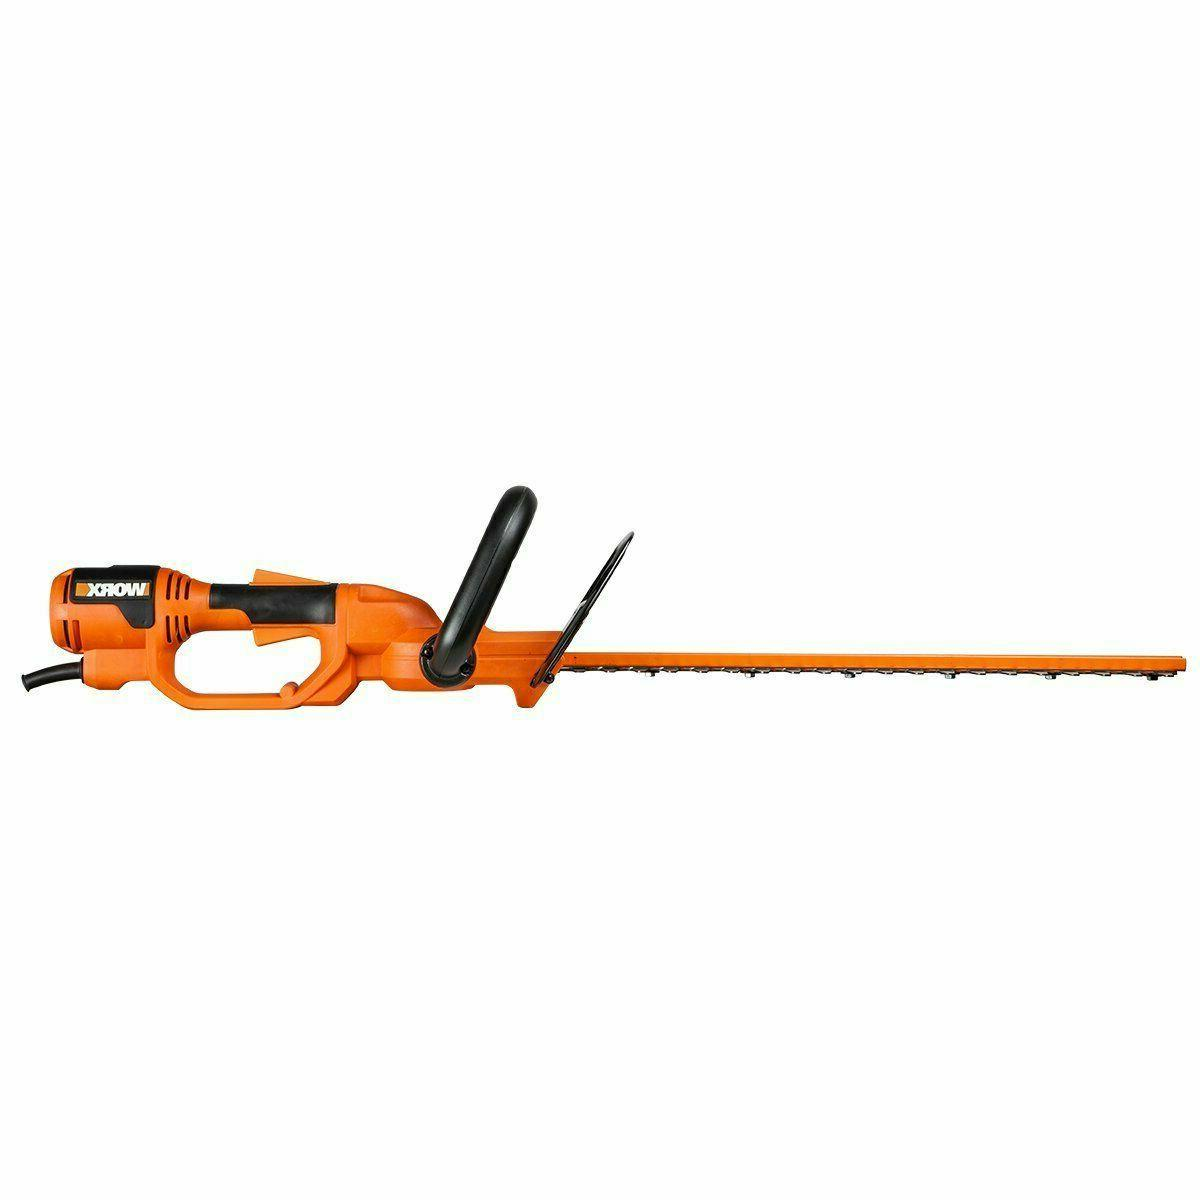 wg212 dual action hedge trimmer